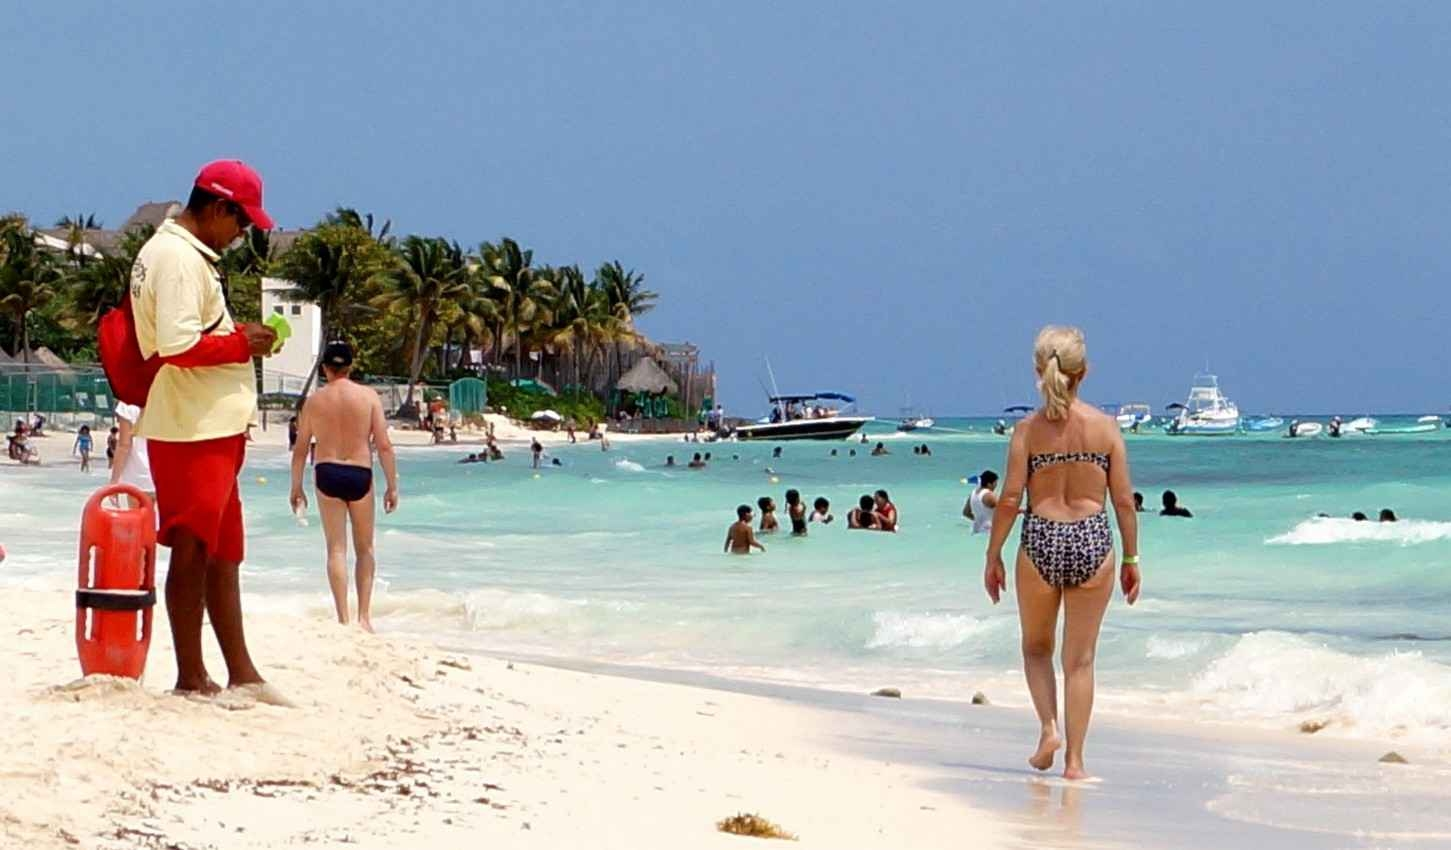 A middle-aged woman walked down the beach near a lifeguard in Playa Del Carmen.